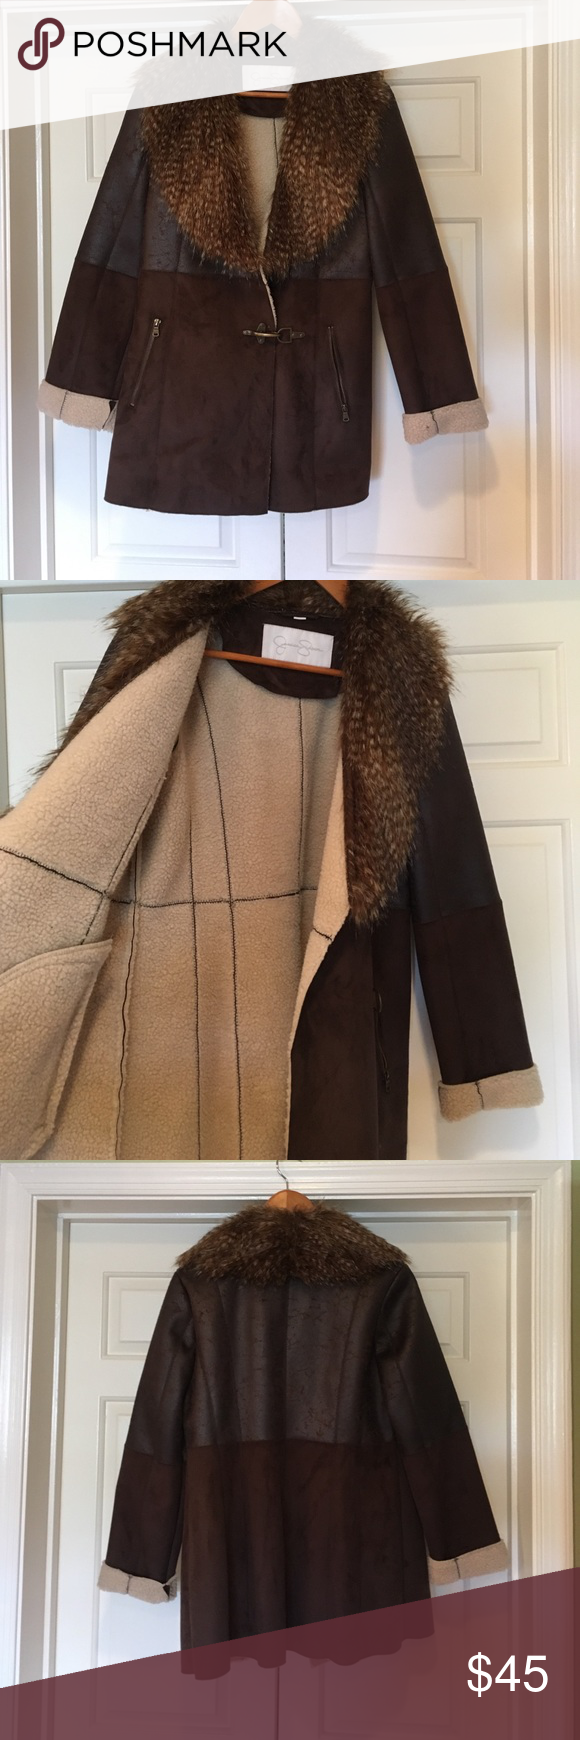 45000a7d2554 Jessica Simpson Women's Coat Faux shearling coat with faux fur collar.  Brown suede. Brass toggle close. Hardly worn. Jessica Simpson Jackets &  Coats